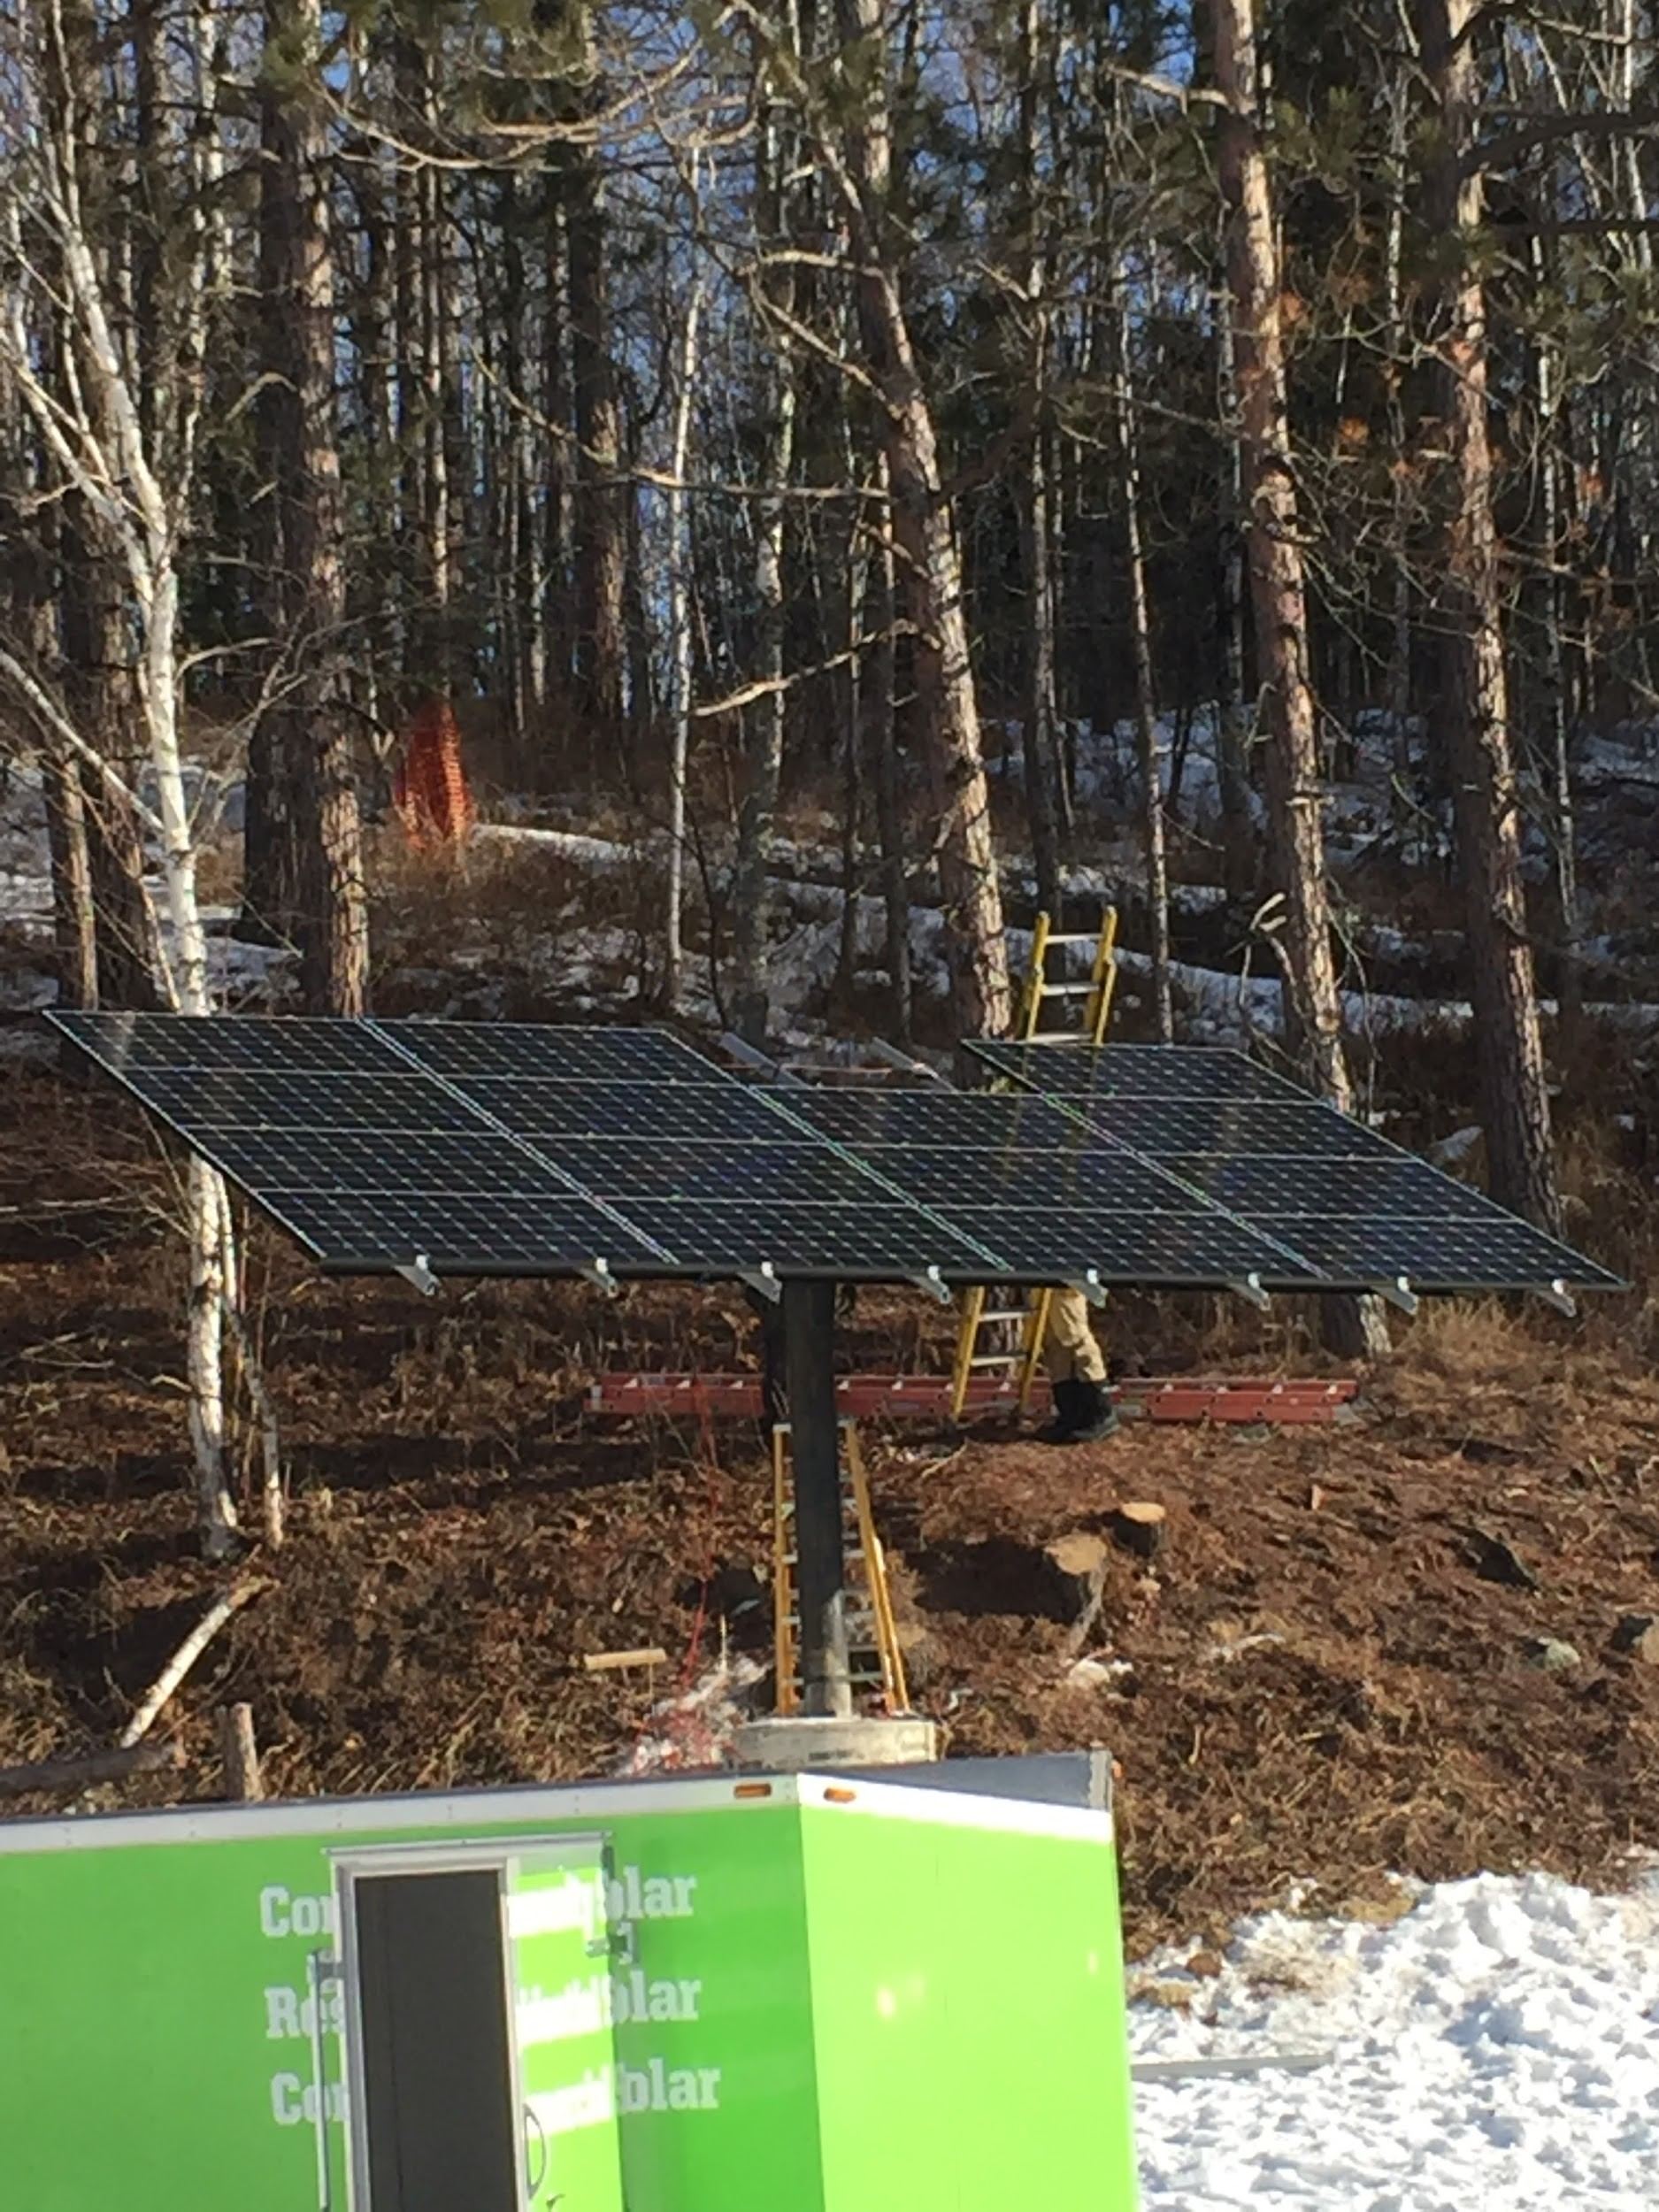 Lester Park Ski trail solar array under construction